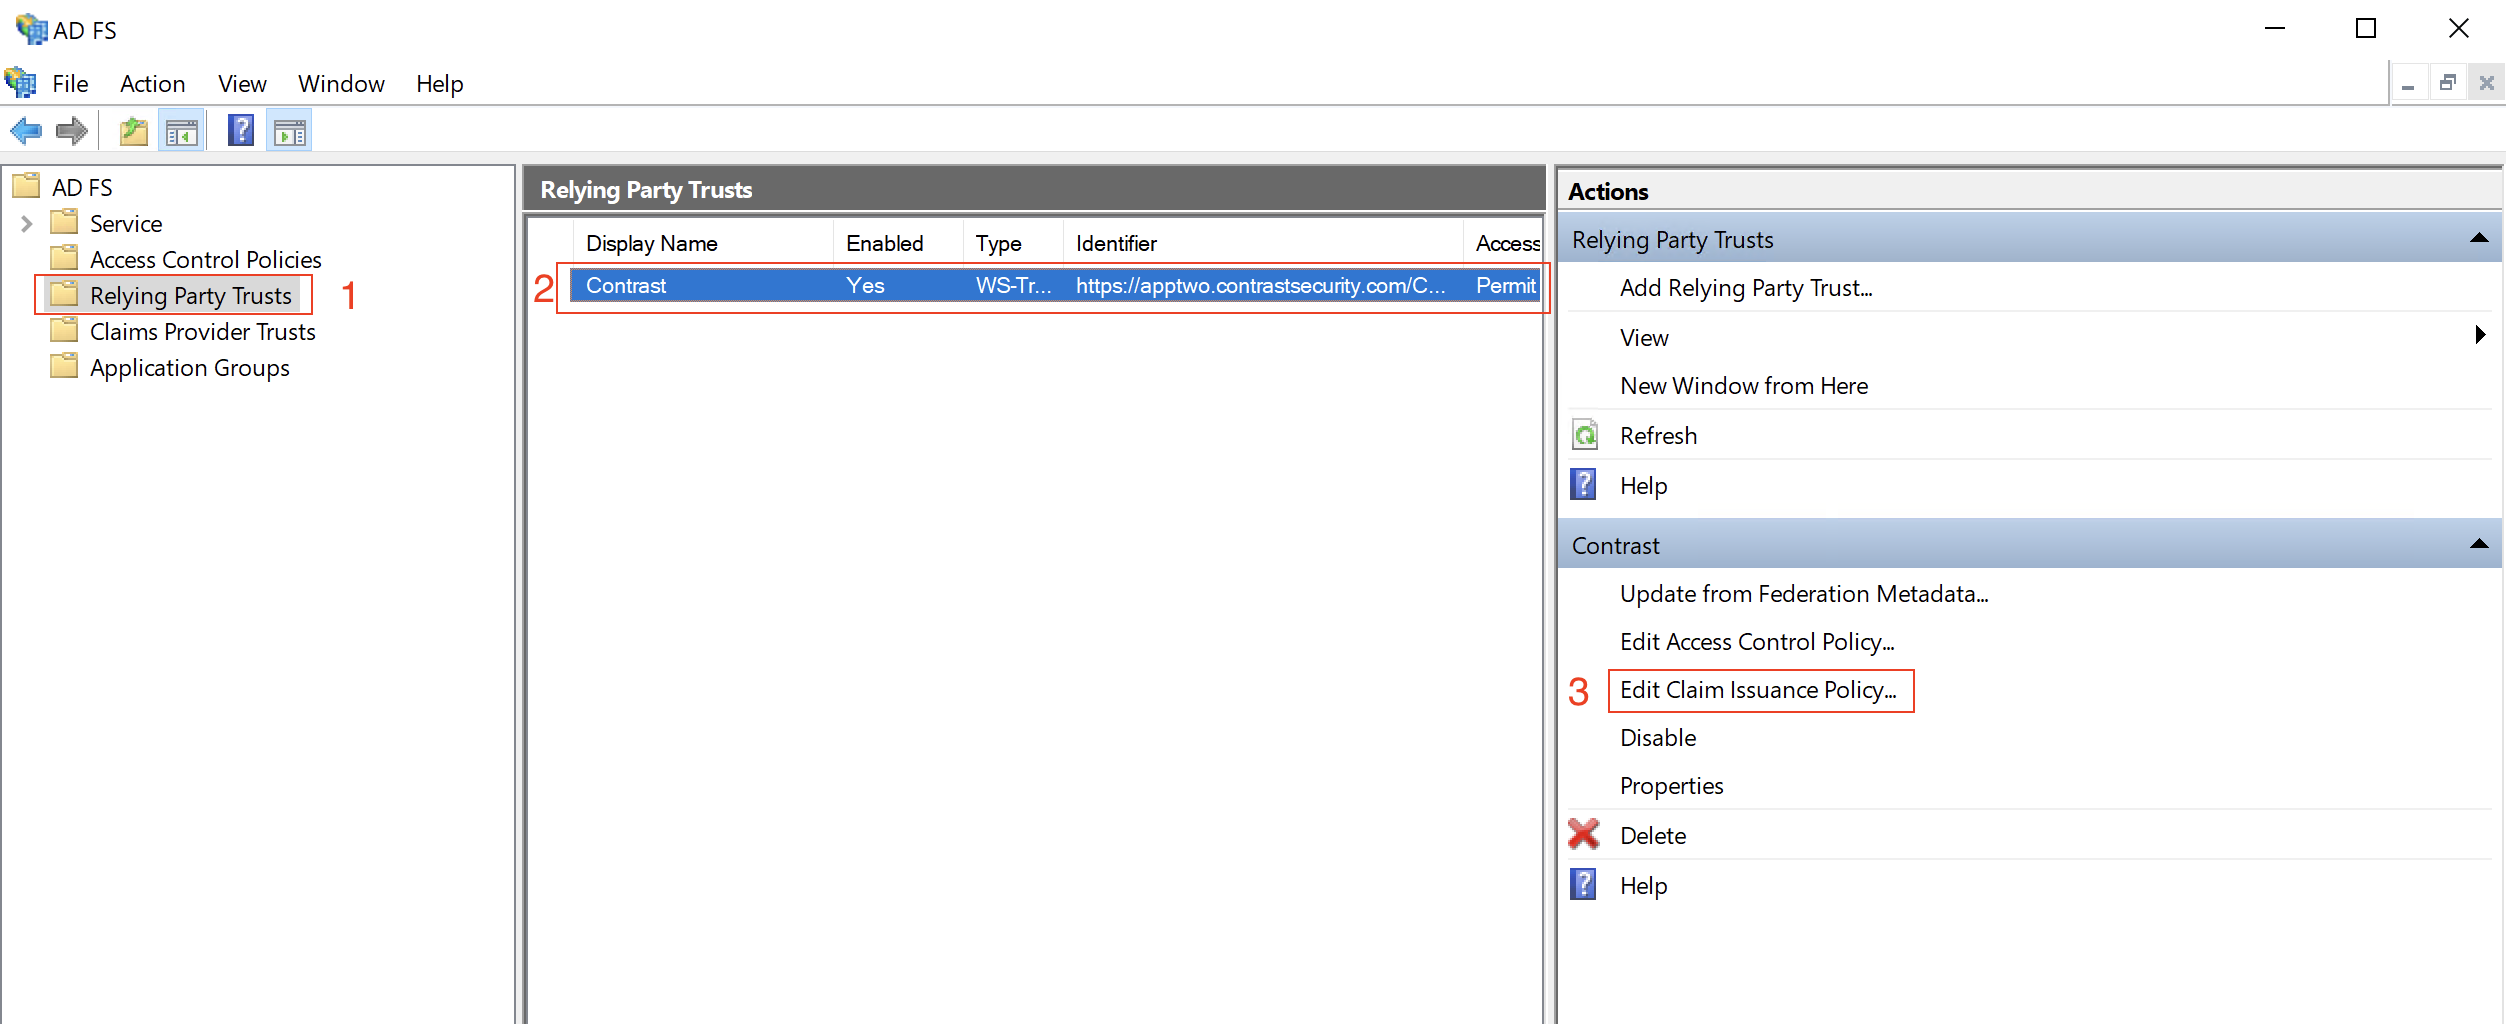 Screenshot of the AD FS Management console, highlighting steps necessary to edit the claim issuance policy